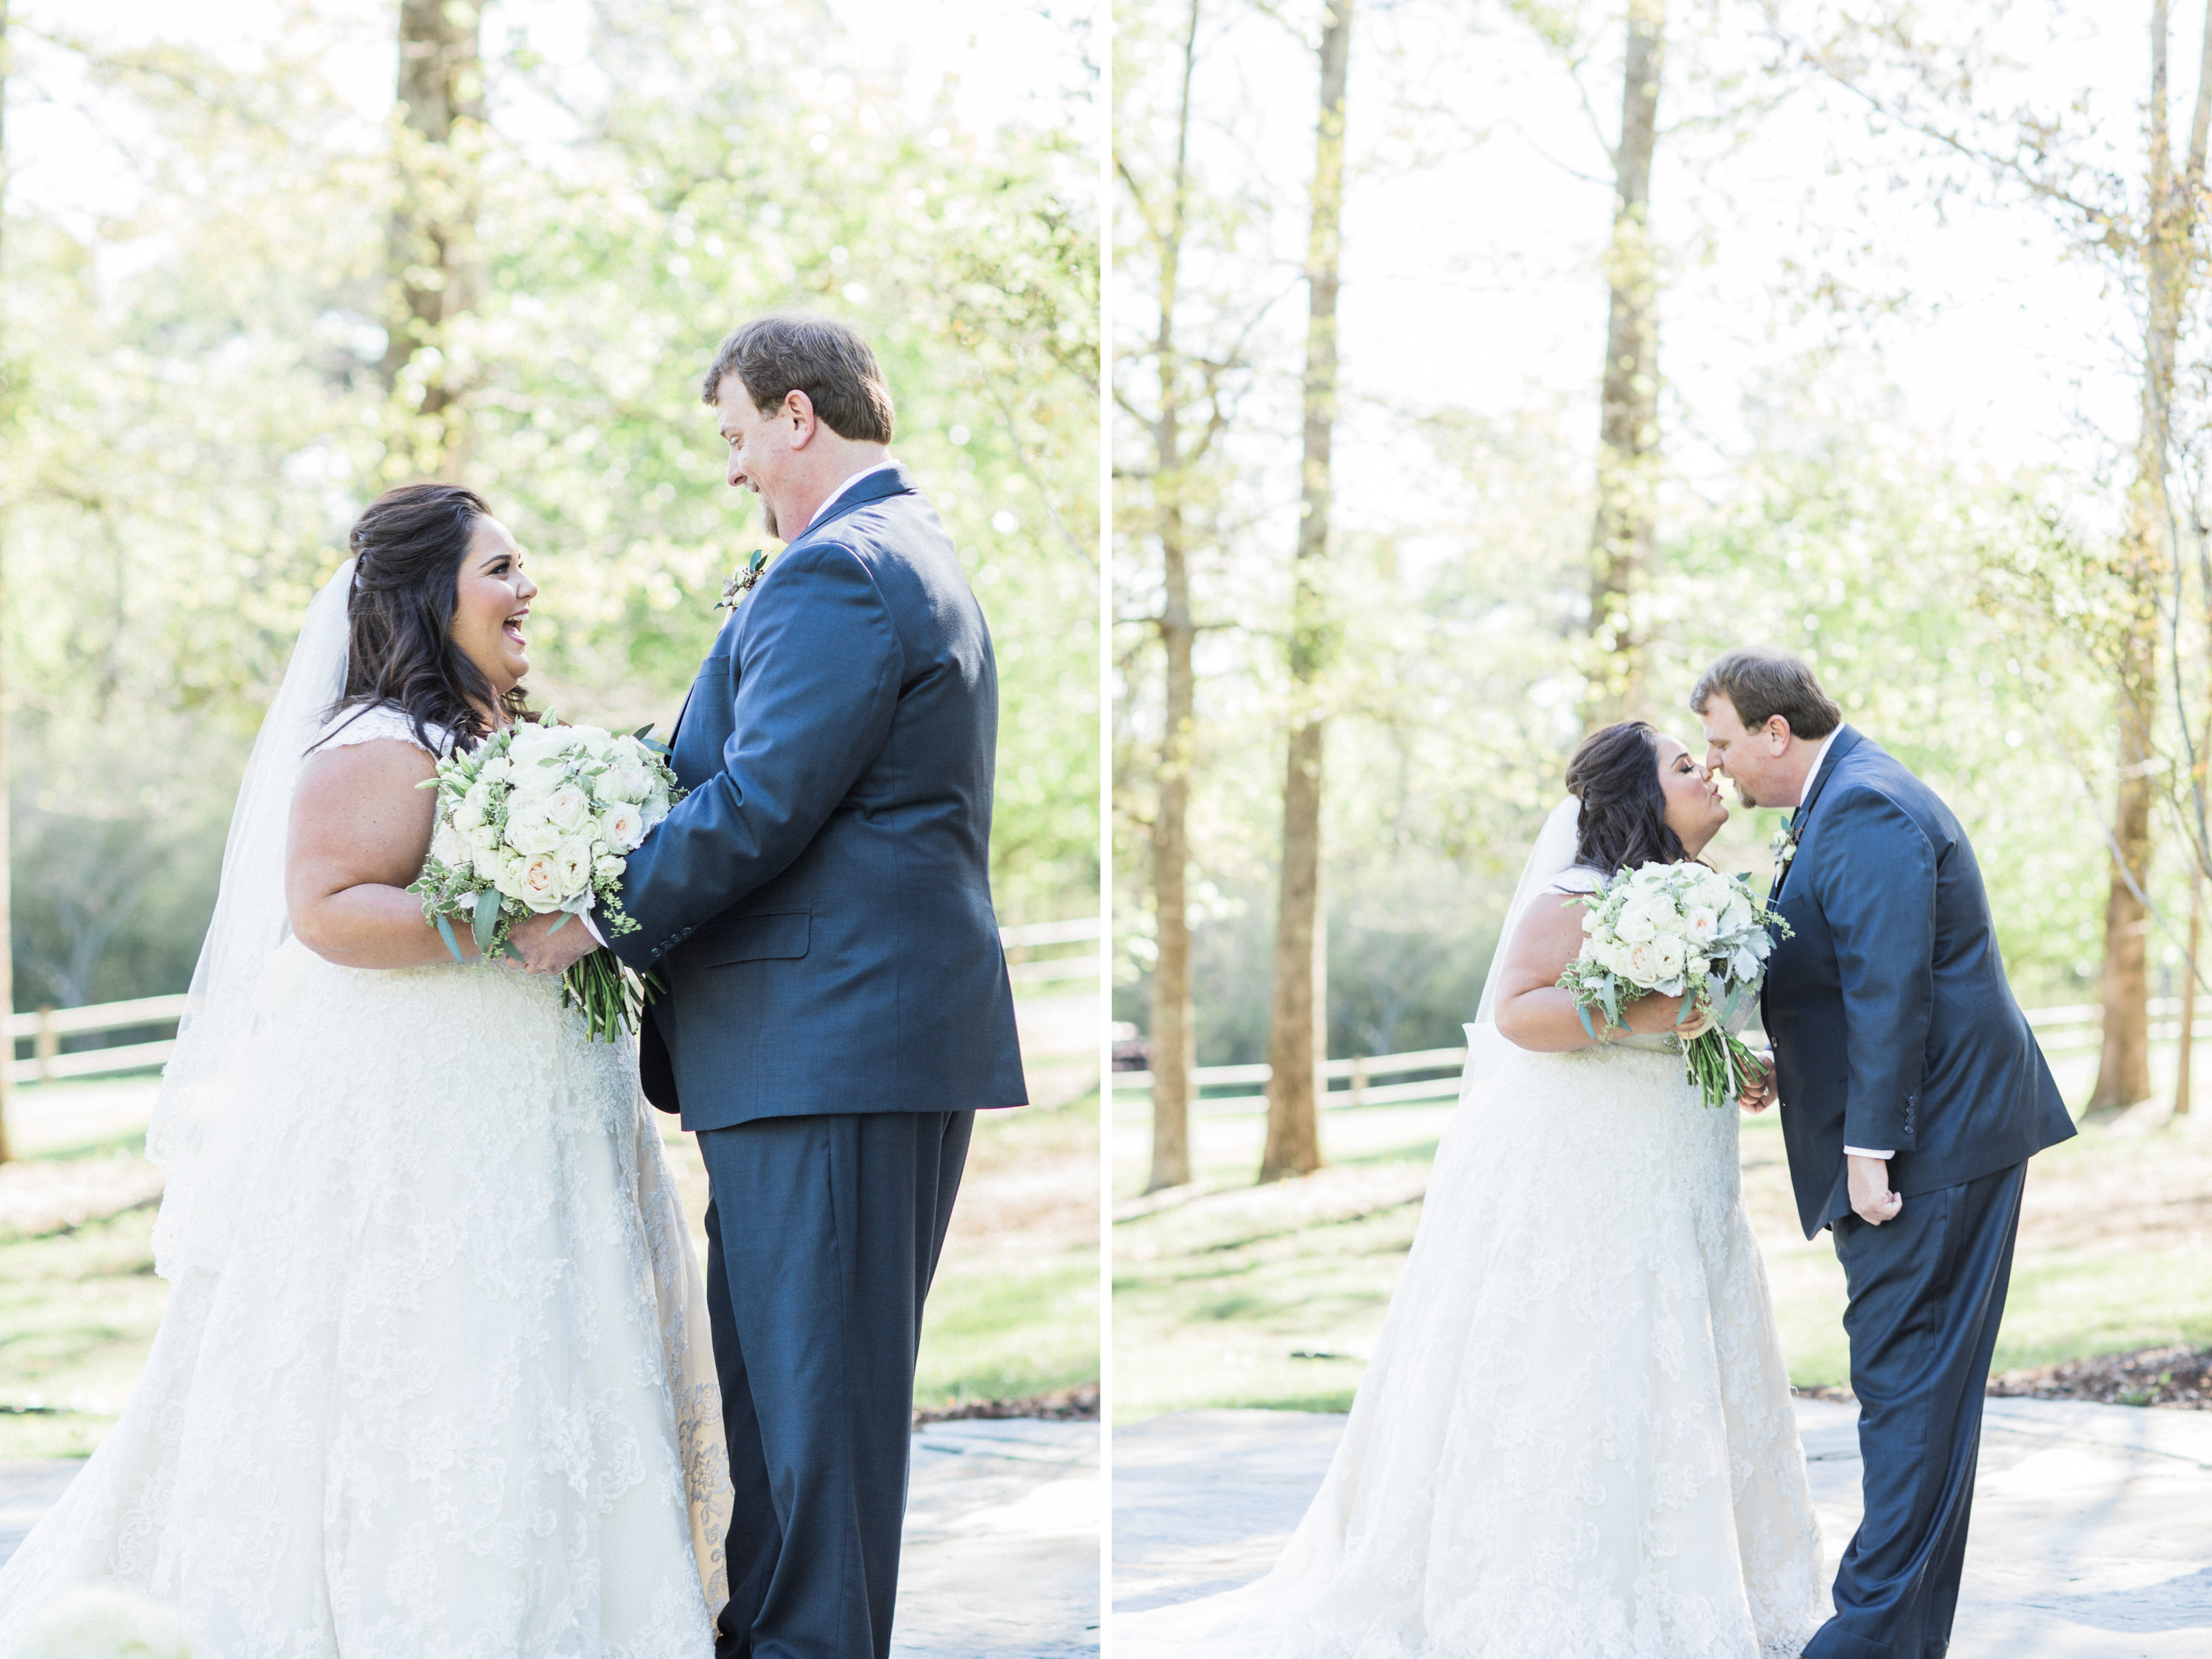 CAHOON_WEDDING_BIRMINGHAM_ALABAMA_WEDDING_PHOTOGRAPHY_49